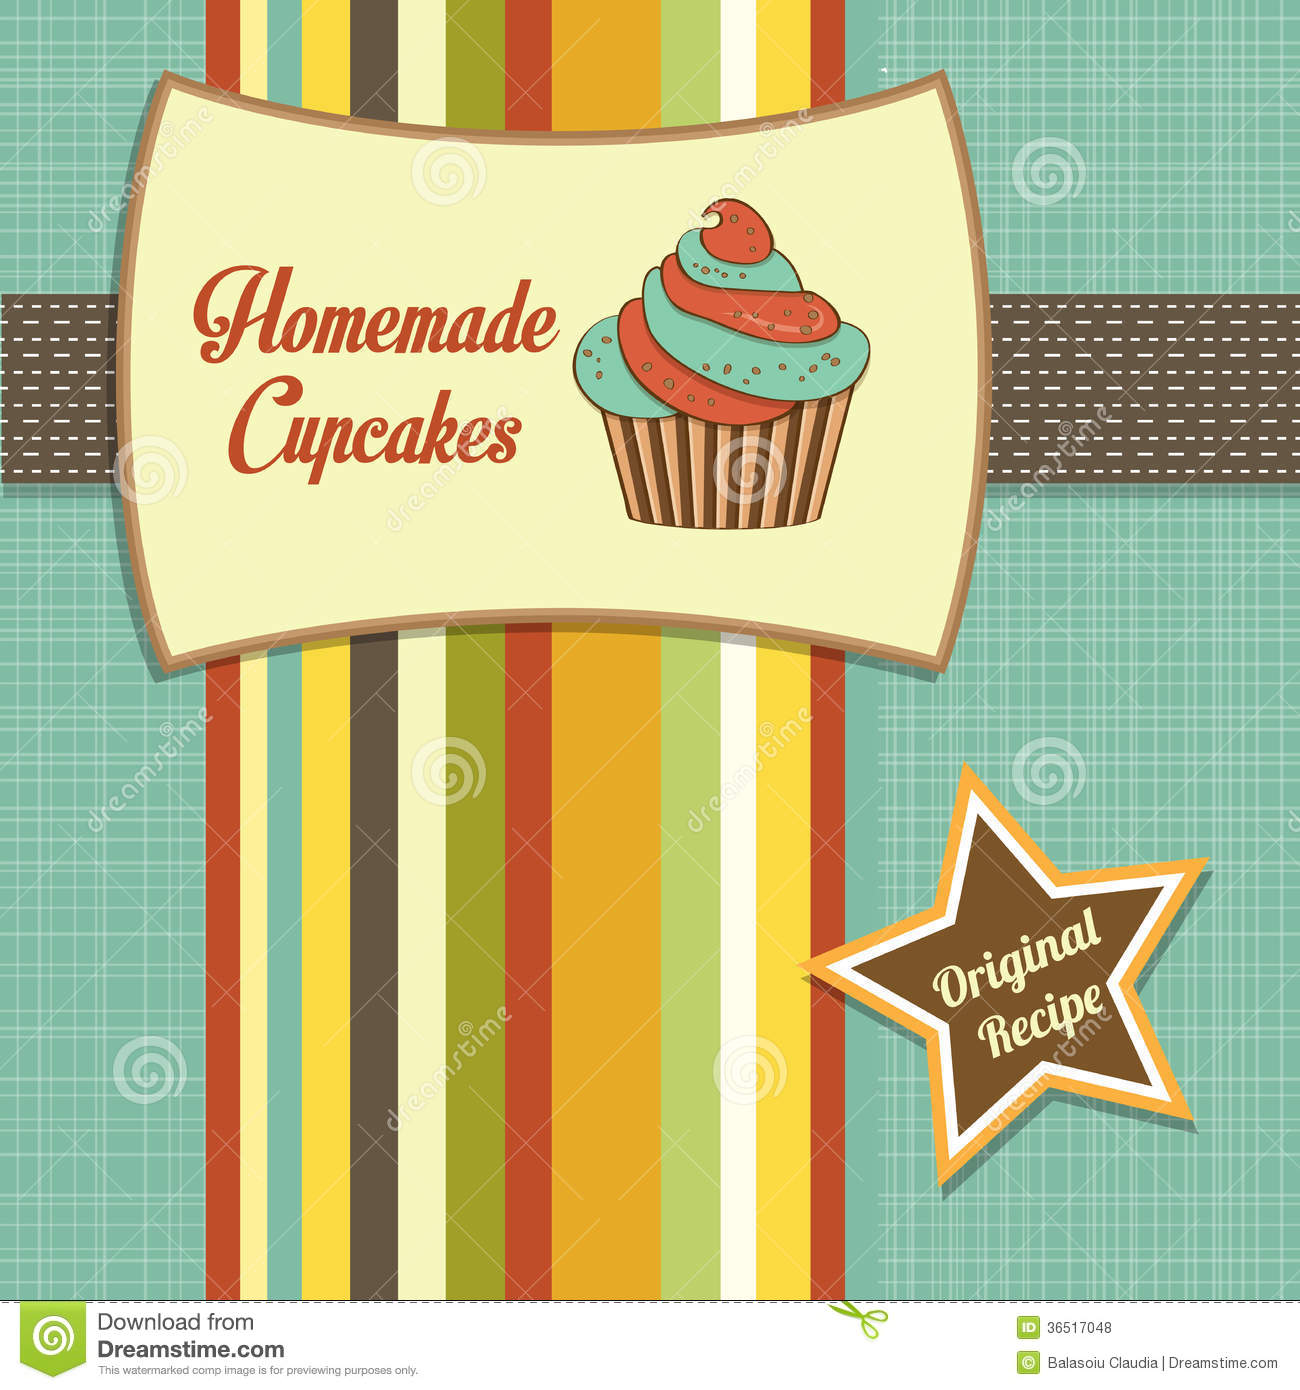 Vintage Homemade Cupcakes Poster Stock Photo - Image: 36517050